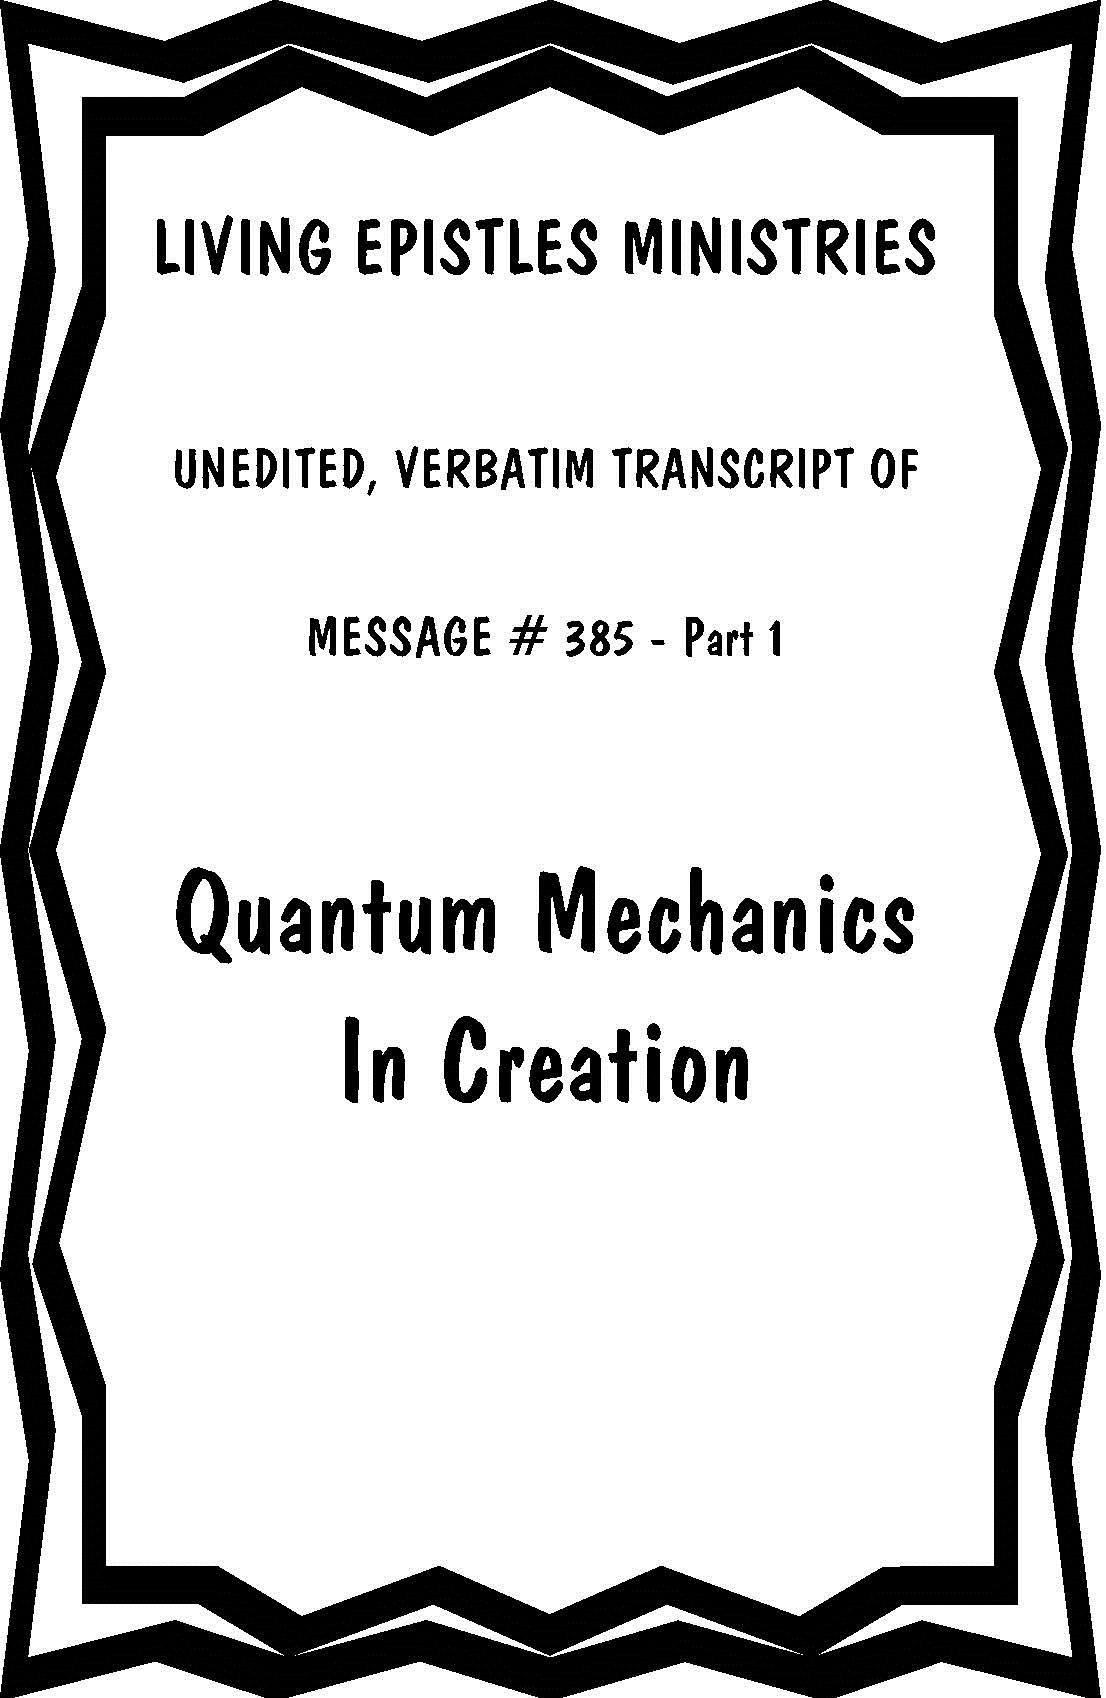 QuantumMechanicsInCreation.LEM.385.01.Cover.040616.72dpi